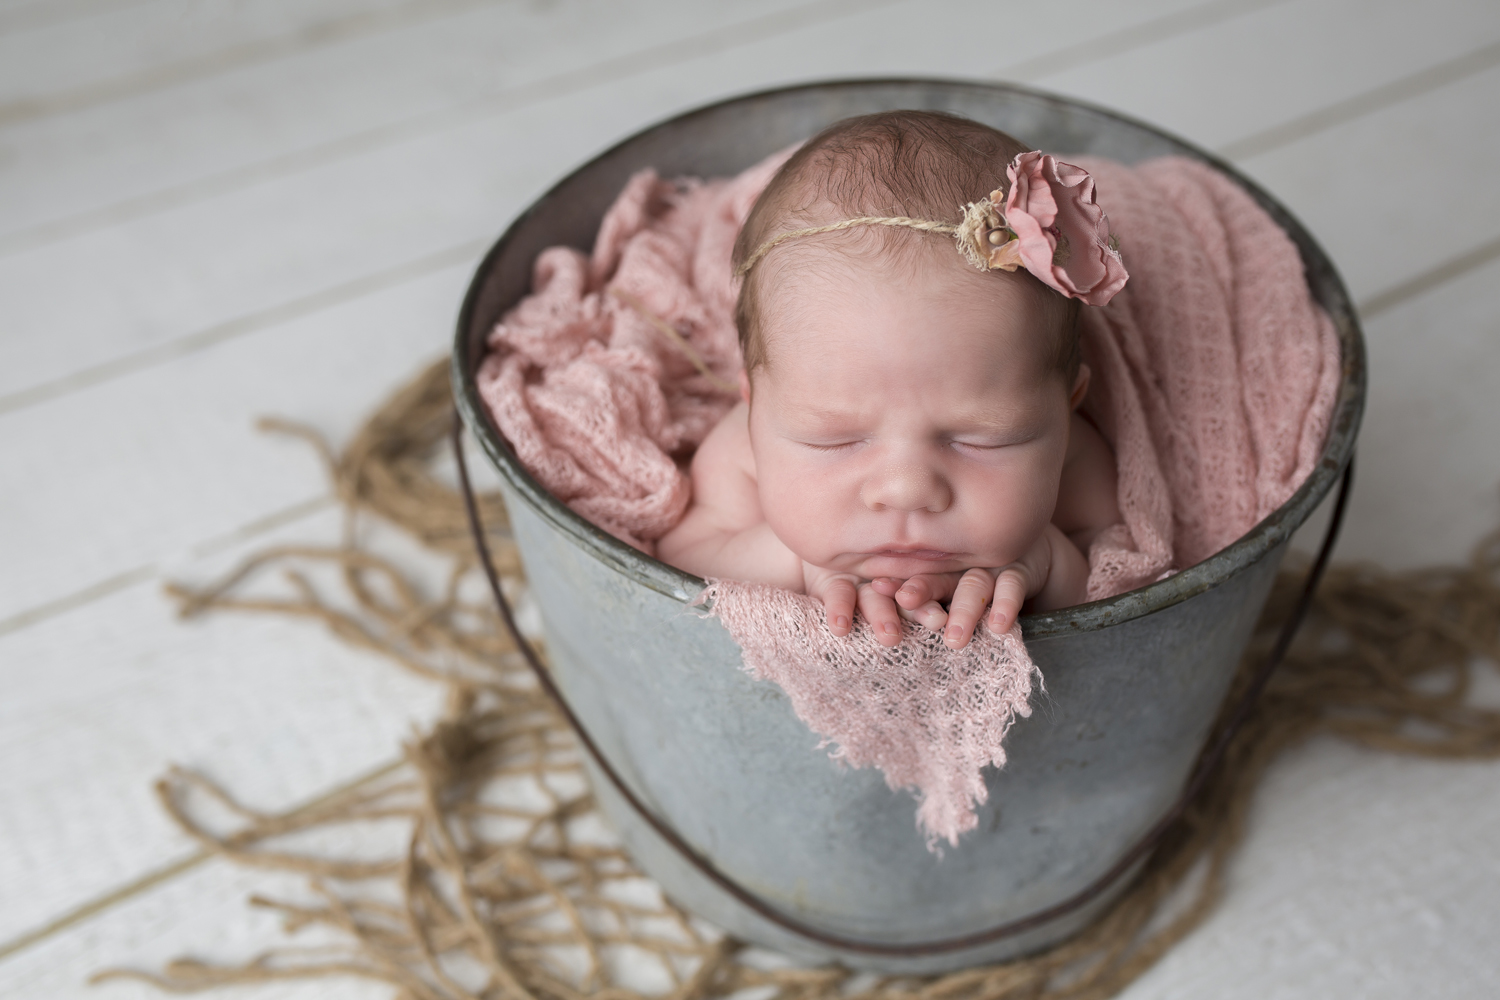 newborn baby girl in a rustic metal bucket posed perfectly surrounded by pink